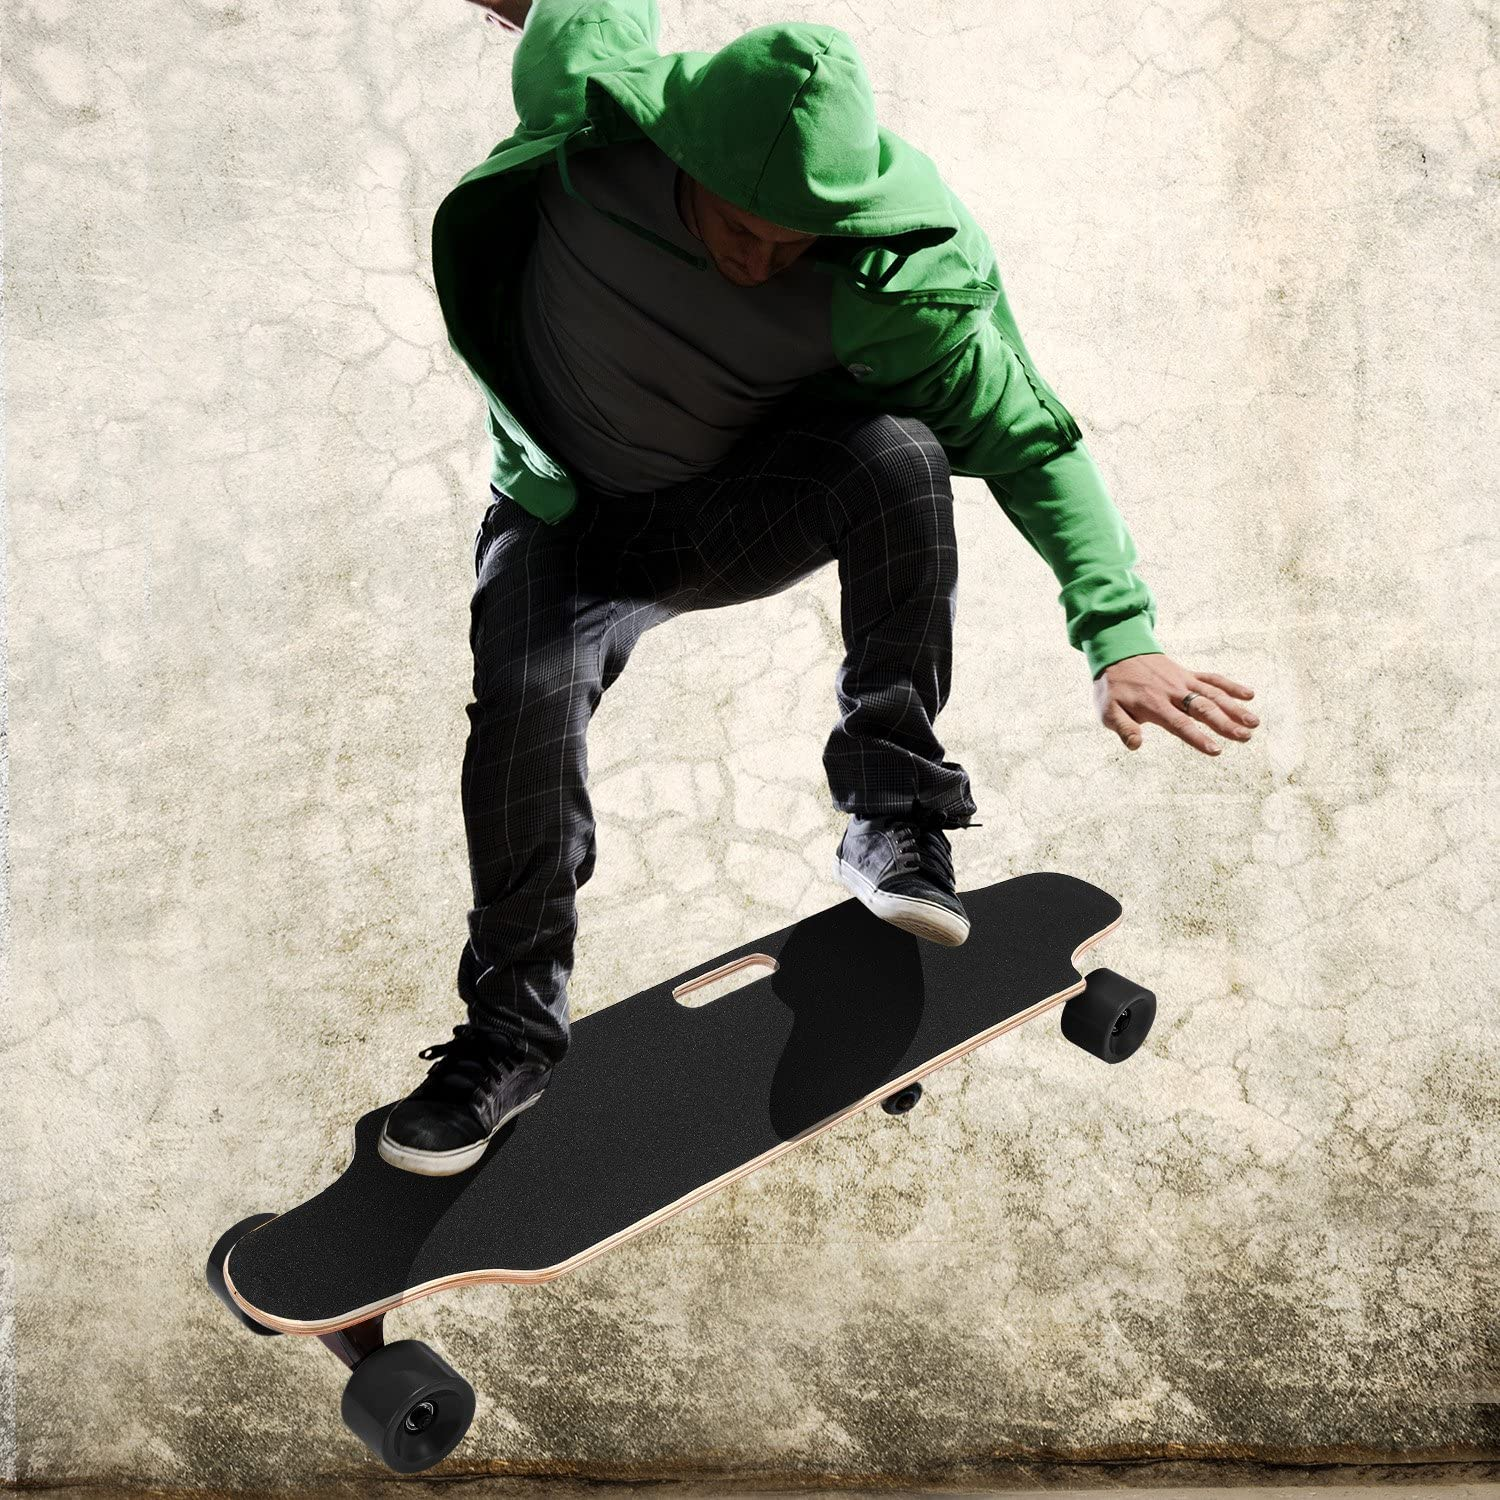 OppsDecor Electric Skateboard with Wireless Remote Control, 7 Layers Maple Longboard, 20Km h Top Speed, 10 Miles Range US Stock